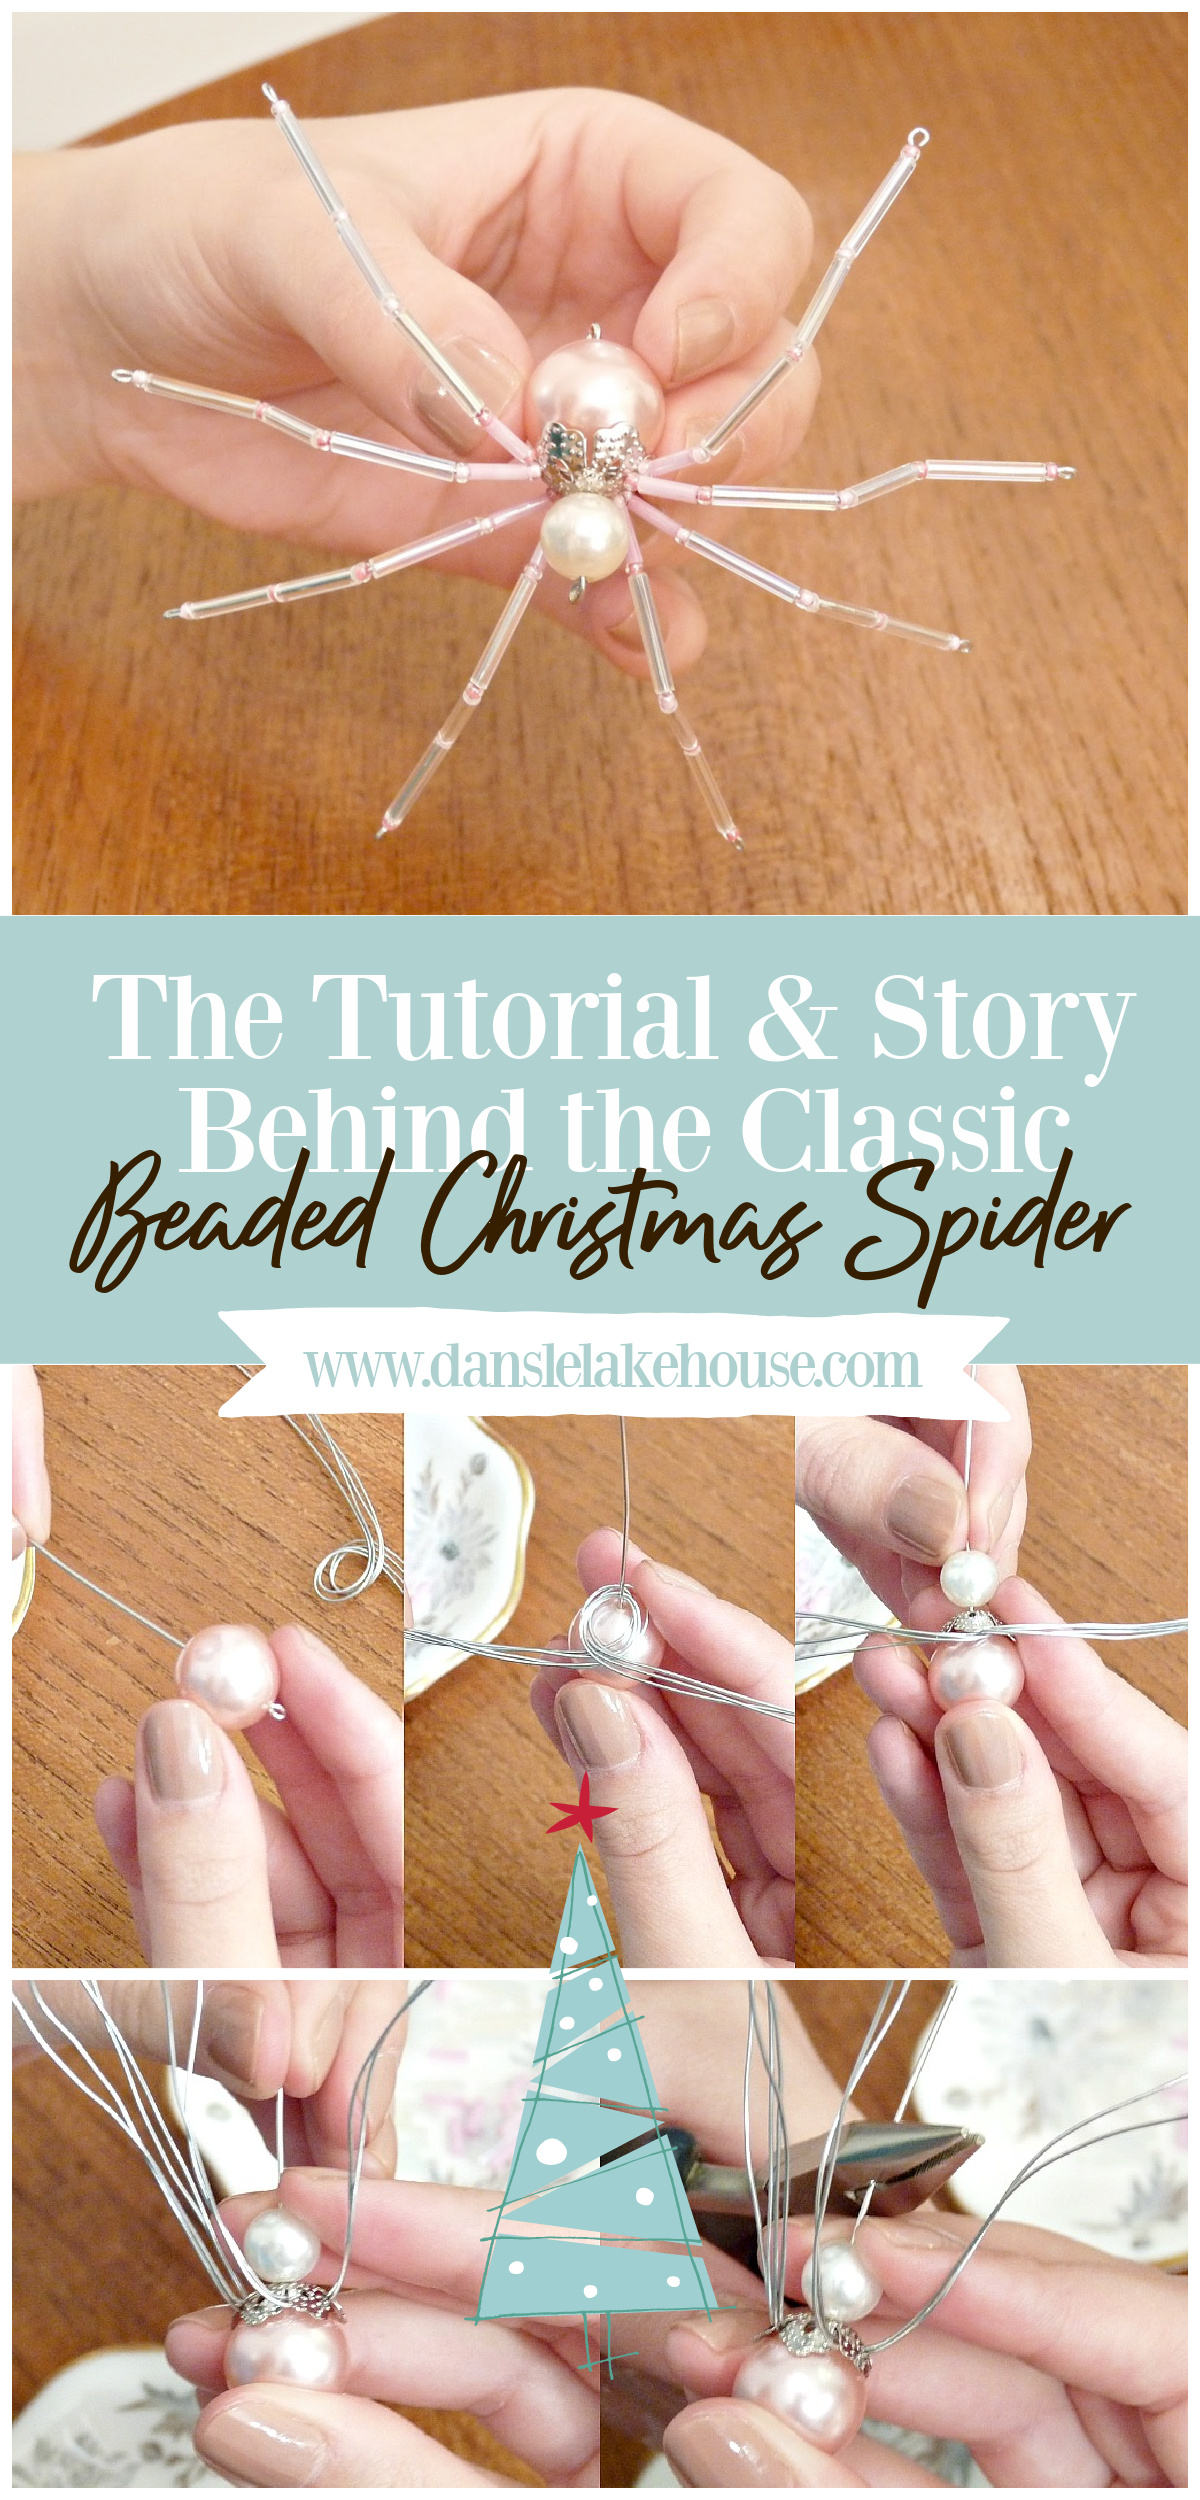 How to Make Beaded Christmas Spiders